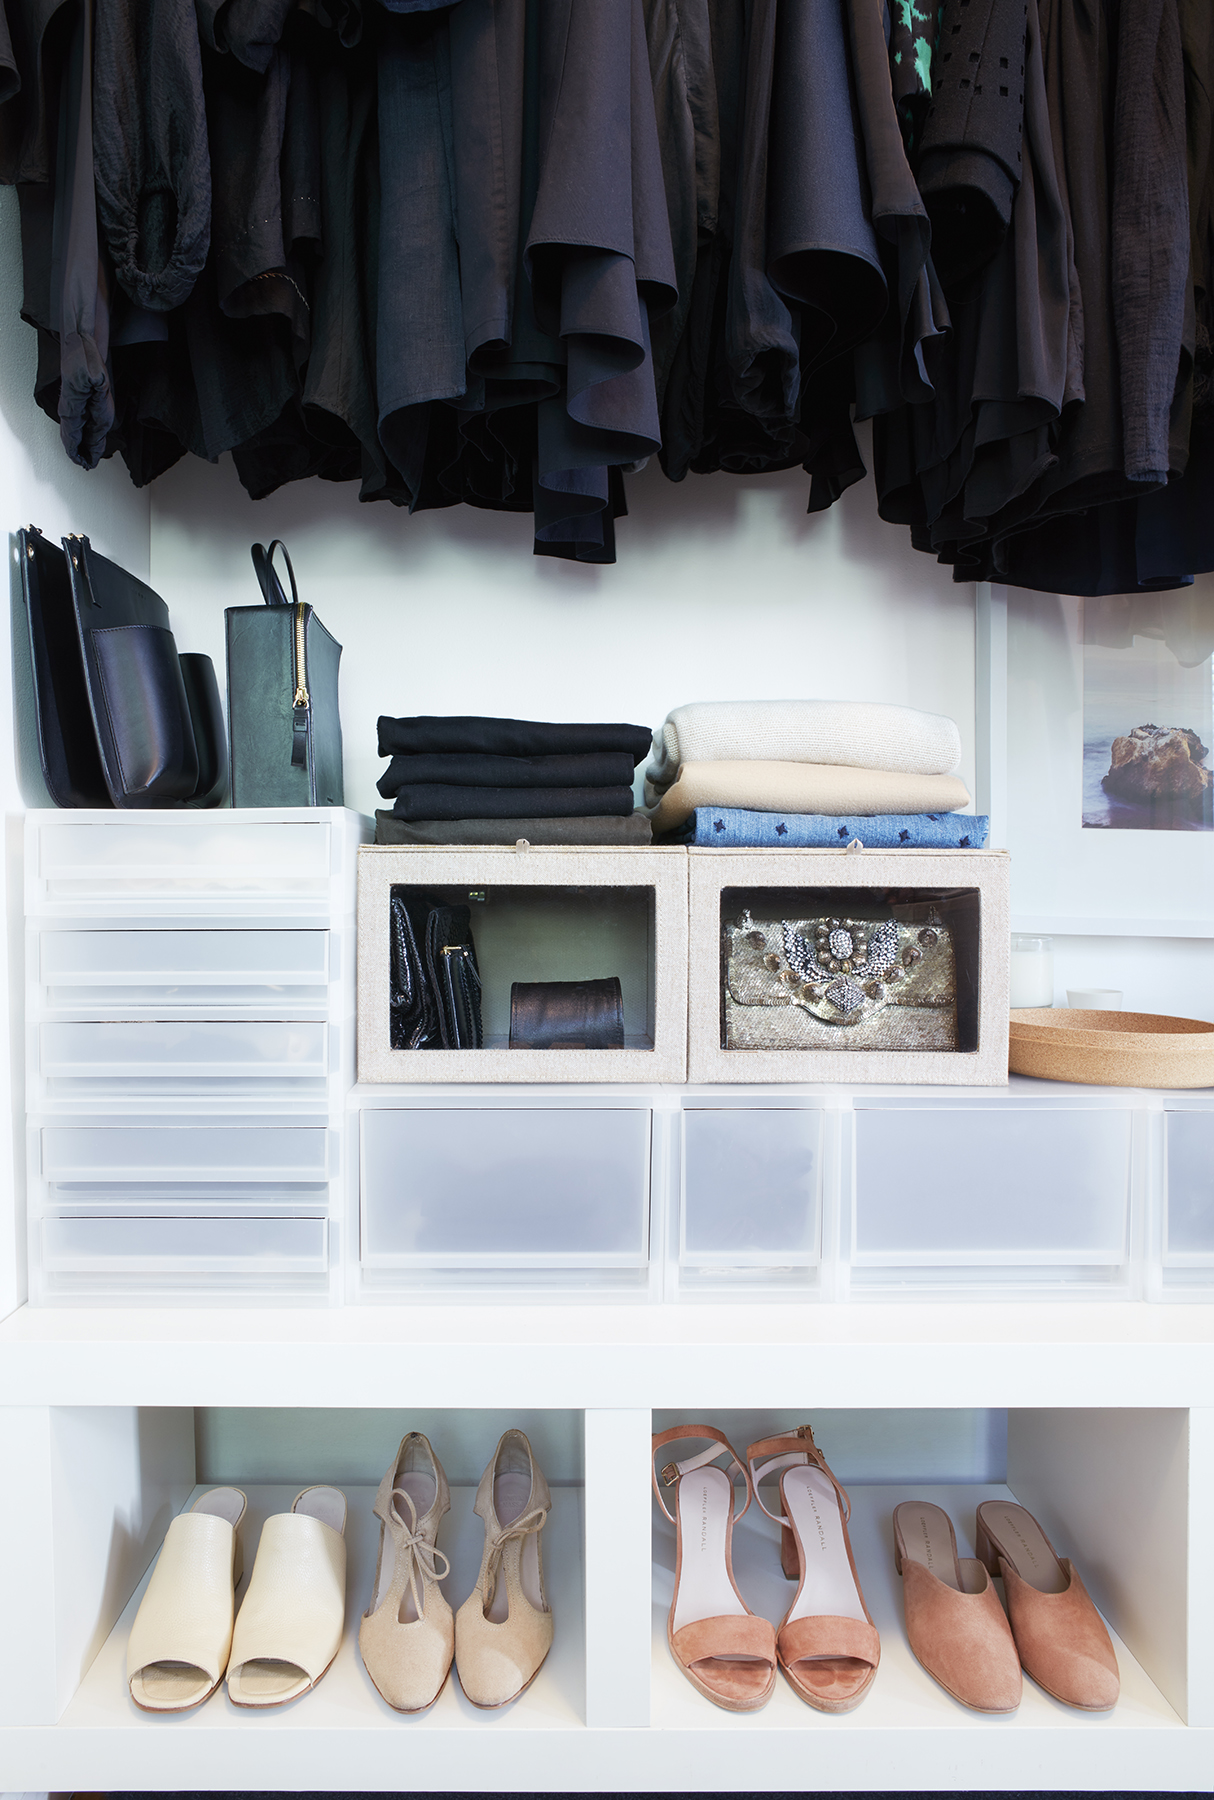 Storing All Like Items Together